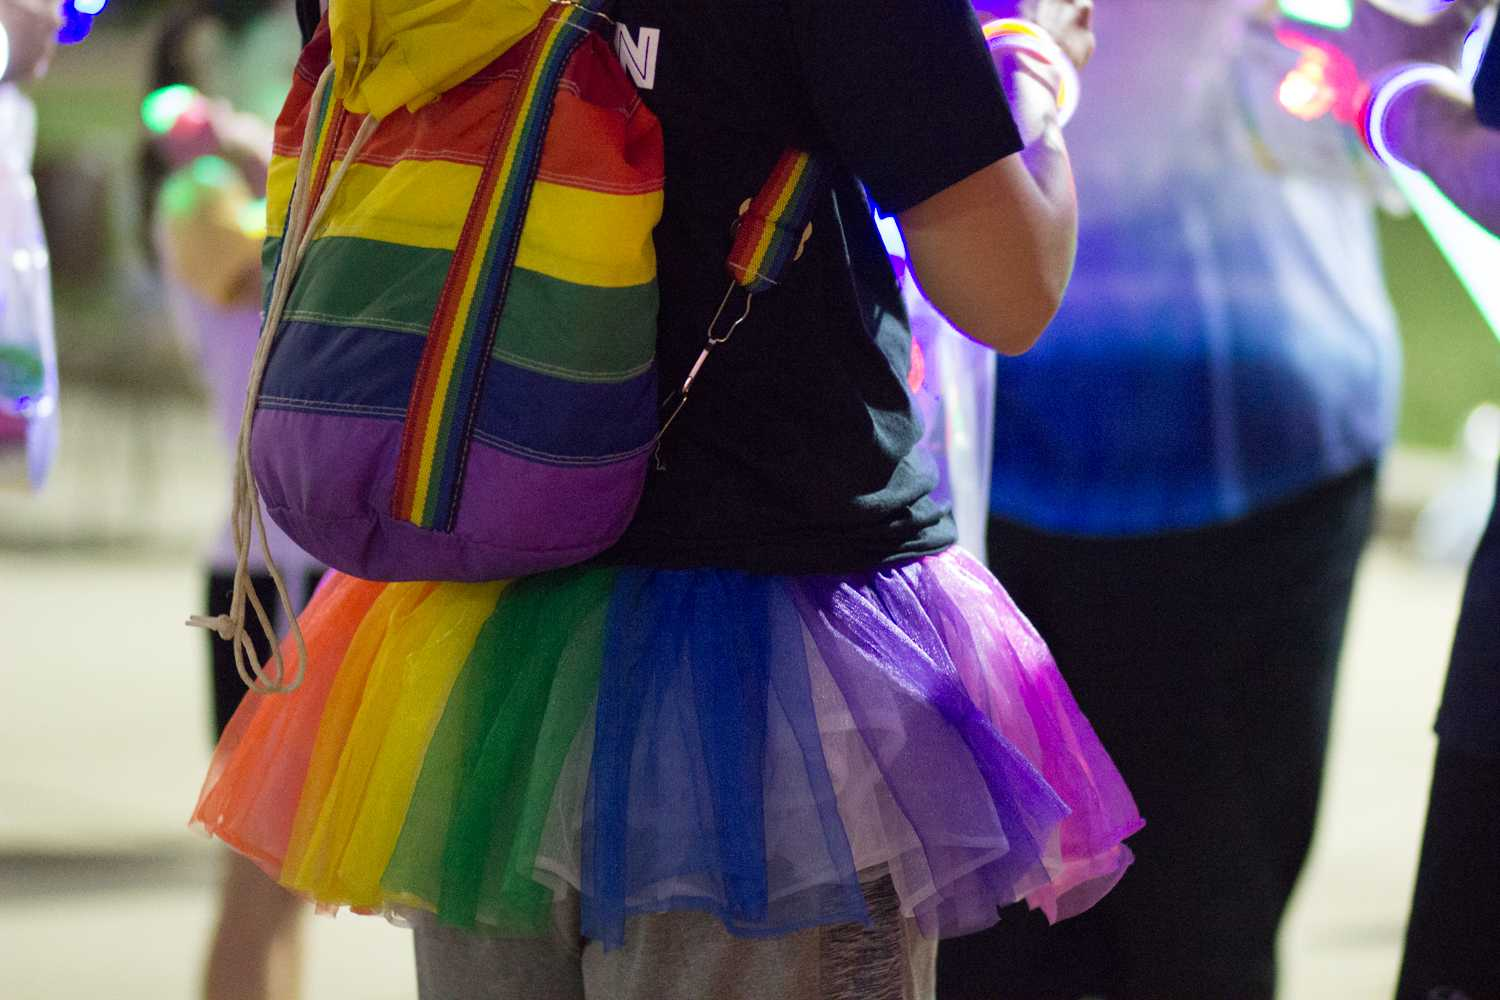 A participant of the Rainbow Race is decked out in a rainbow-colored tutu and backpack during the race outside the Kent State Student Center on Friday, Sept. 21, 2018. Photo by Sophia Adornetto.